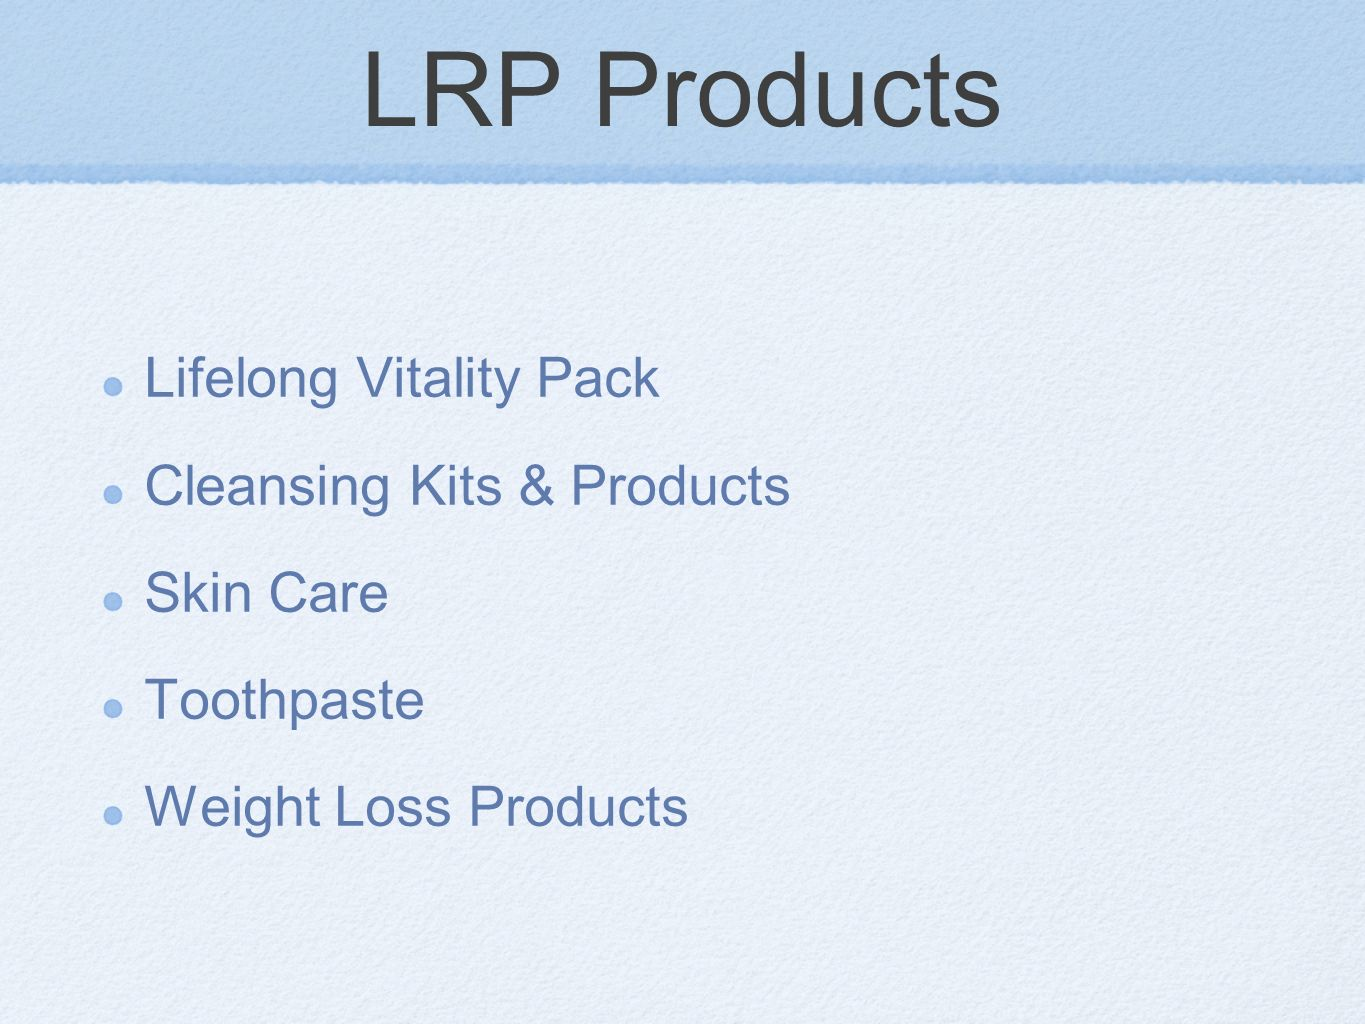 LRP Products Lifelong Vitality Pack Cleansing Kits & Products